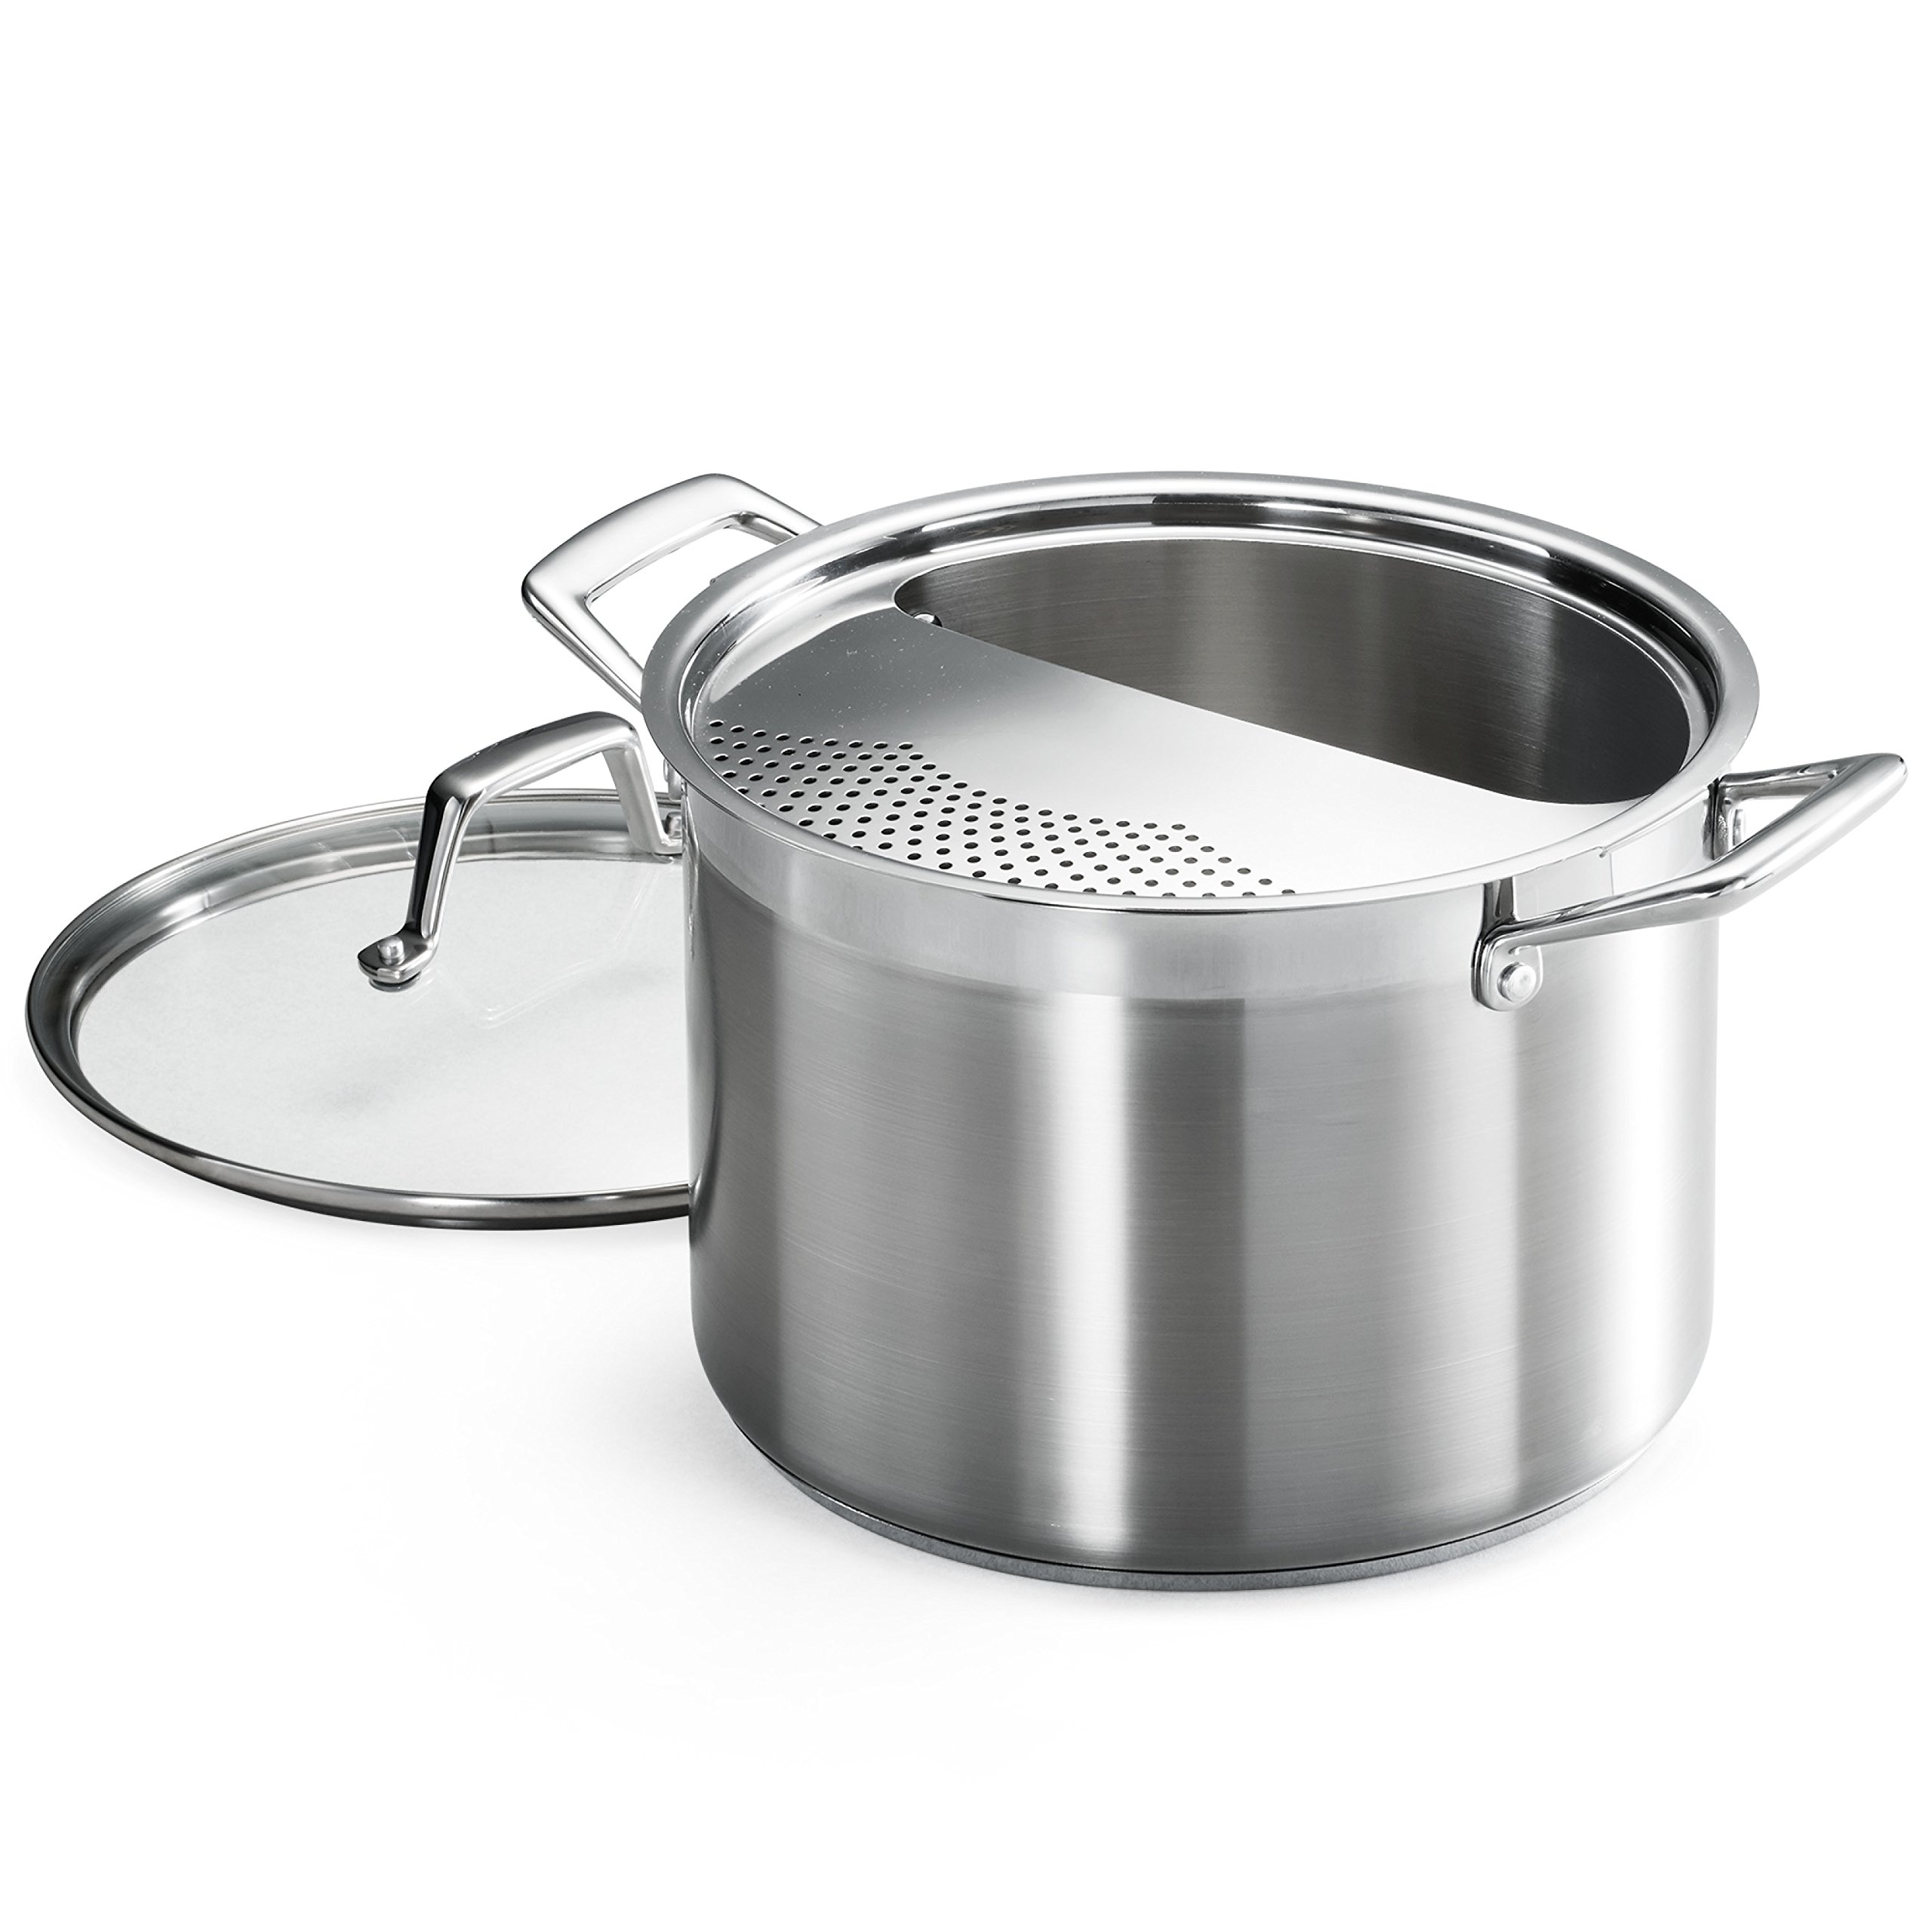 Tramontina 80120/509DS Lock & Drain Pasta Cooker Pot with Strainer Lid, 18/8 Stainless Steel, Induction-Ready, Impact-Bonded, 8-Quart by Tramontina (Image #1)